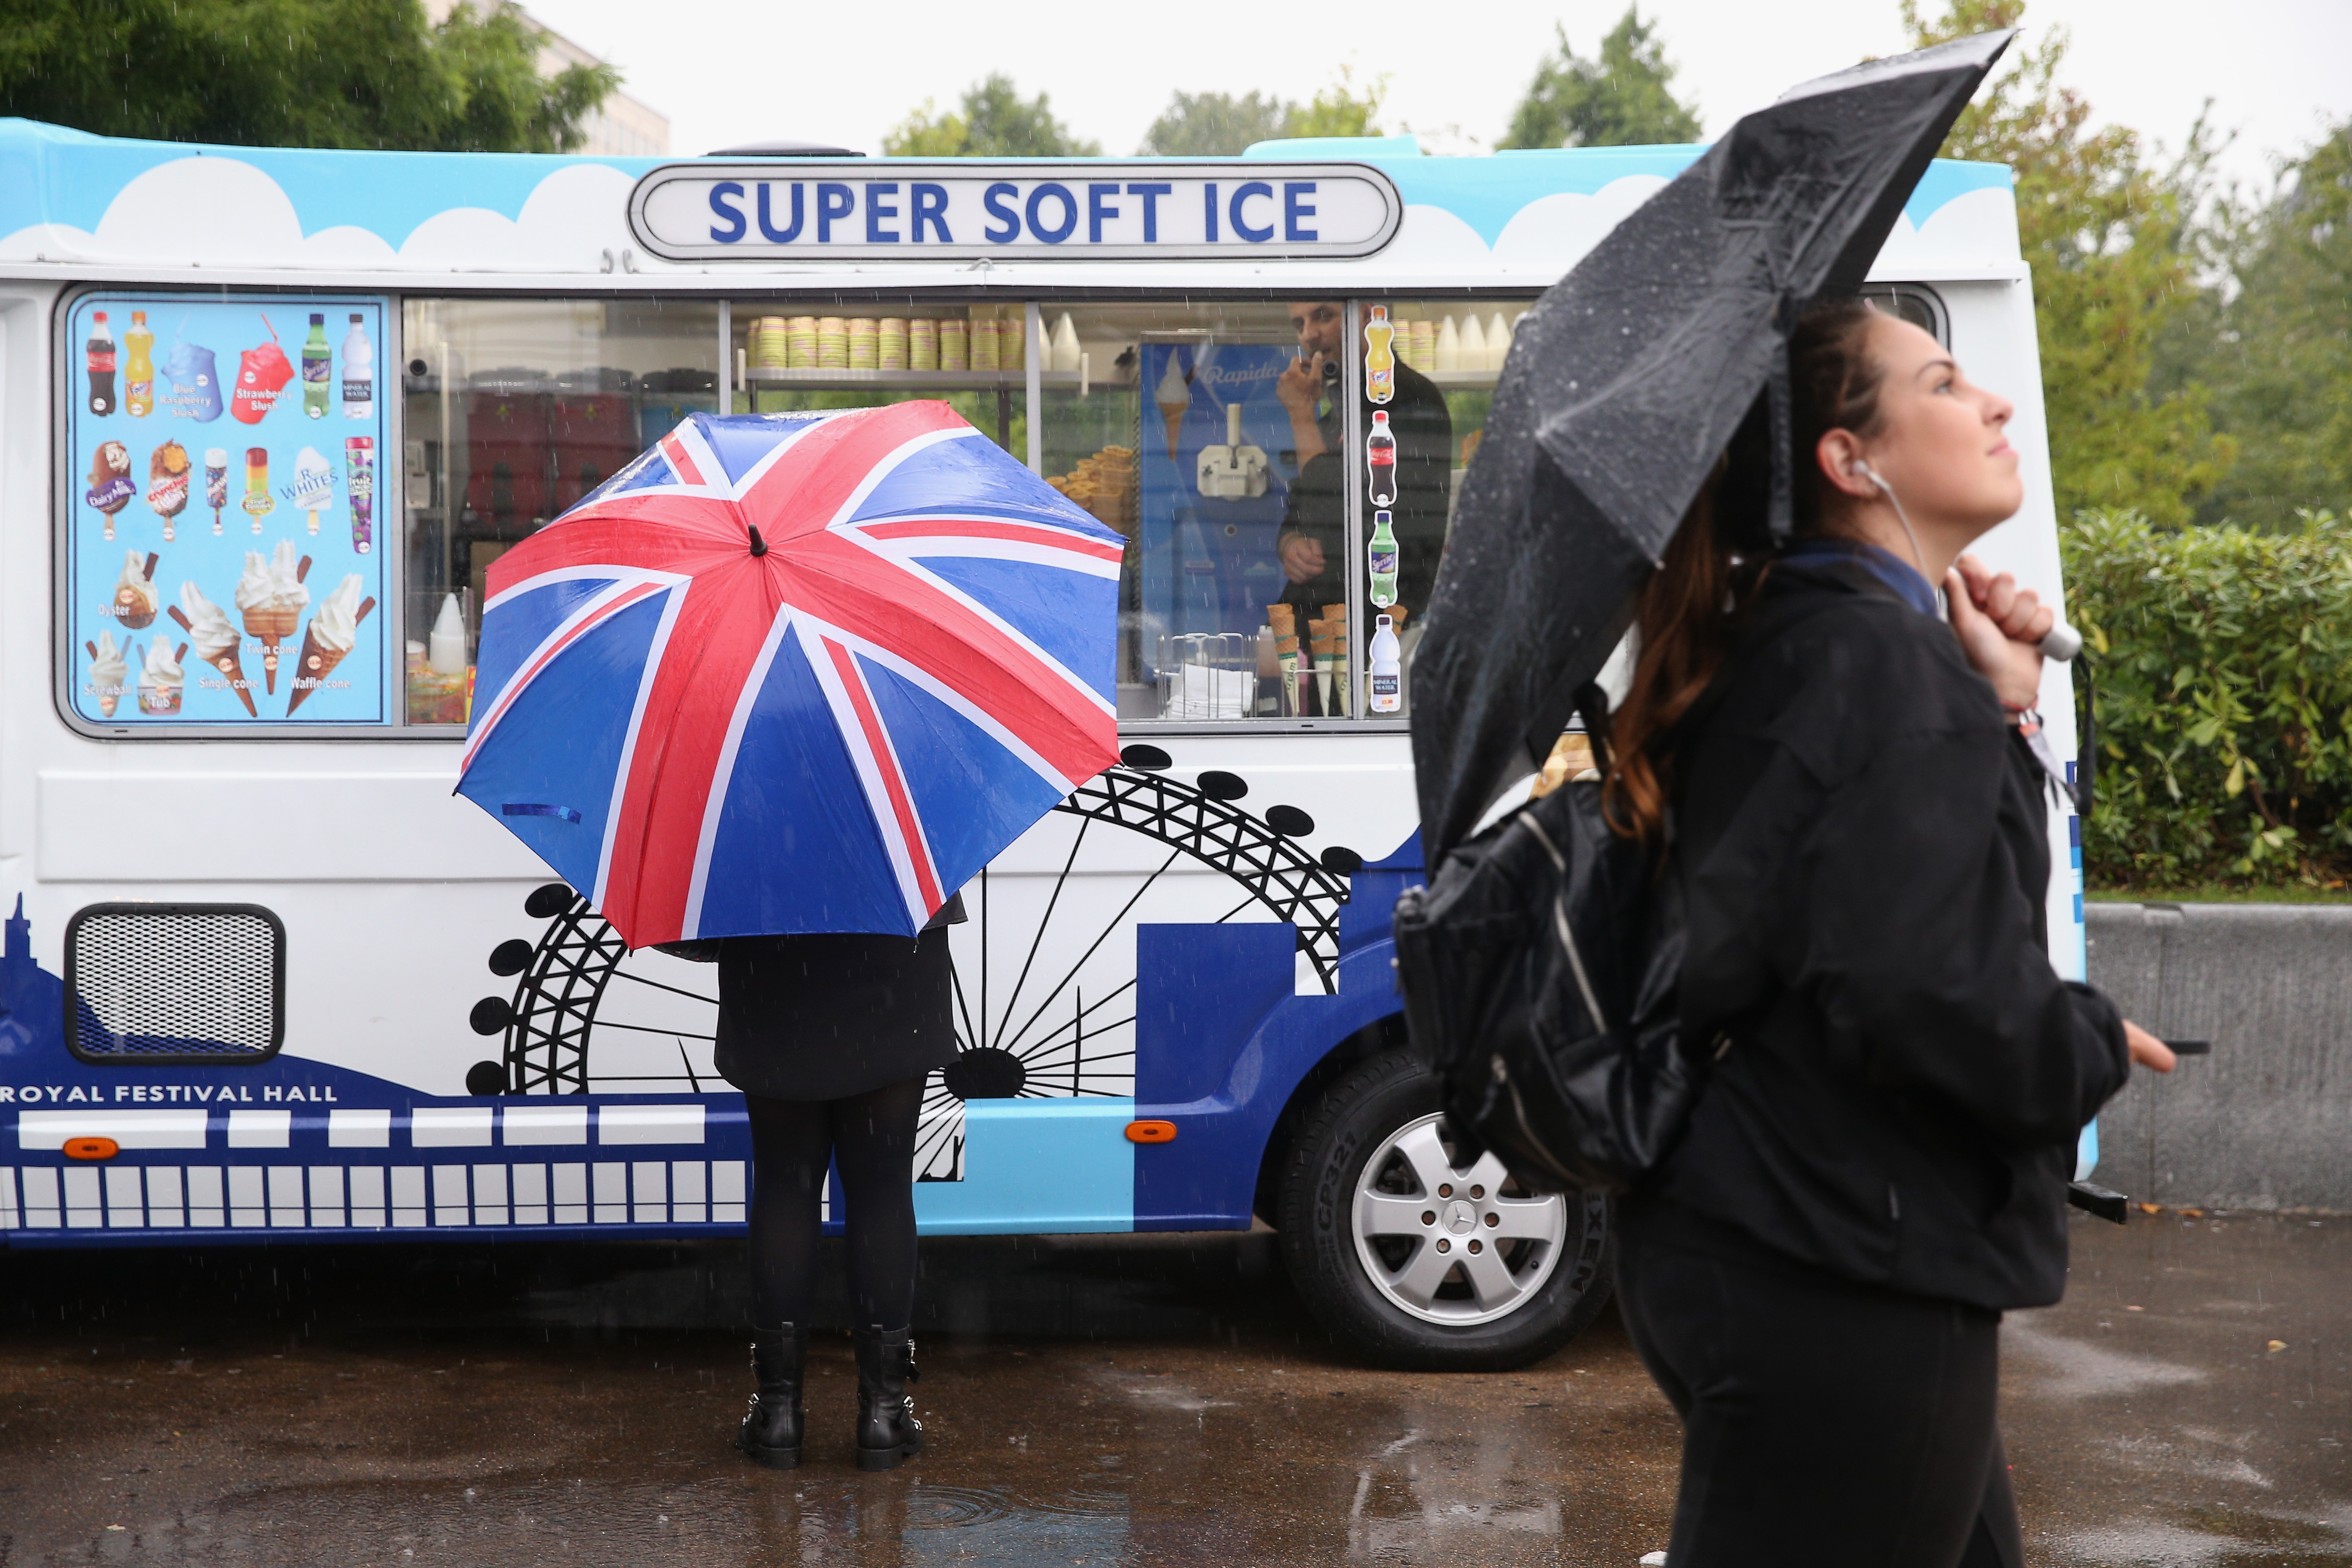 Ice cream van ban in London comes in for summer 2019